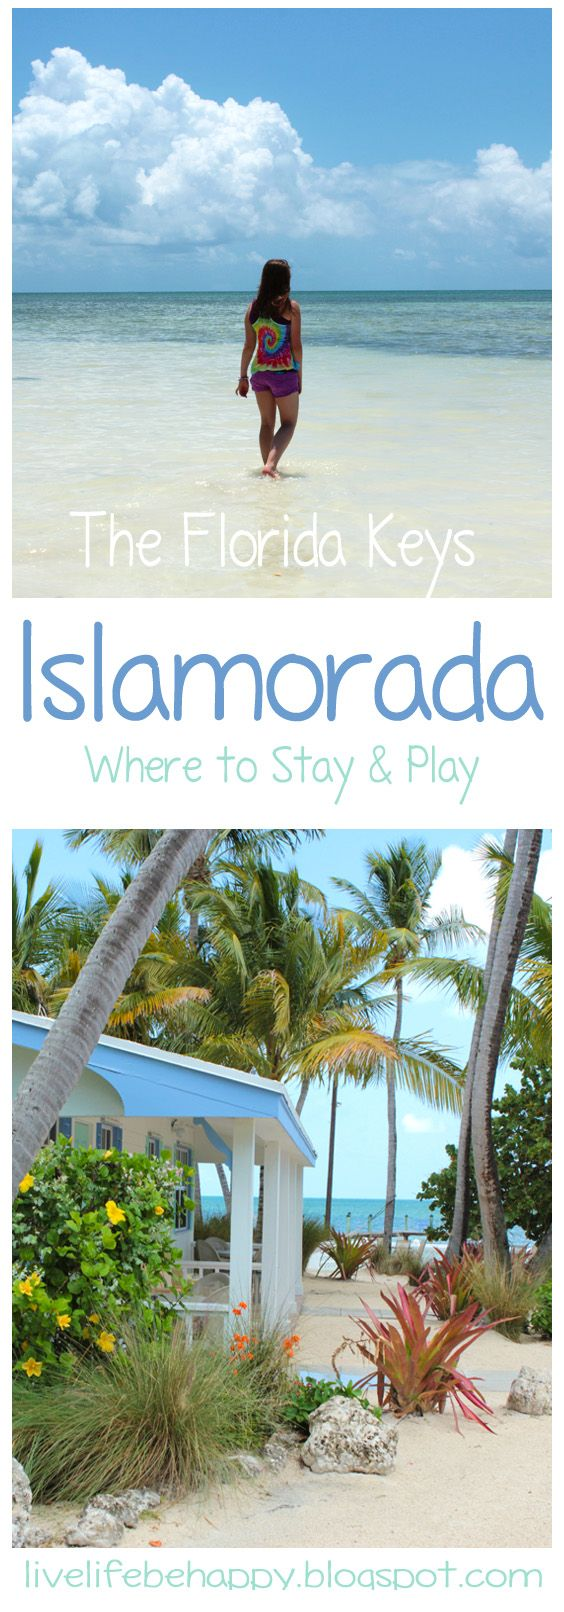 The Florida Keys - Islamorada  - Key West - Robbie's - resort - hotel - Fl - Florida